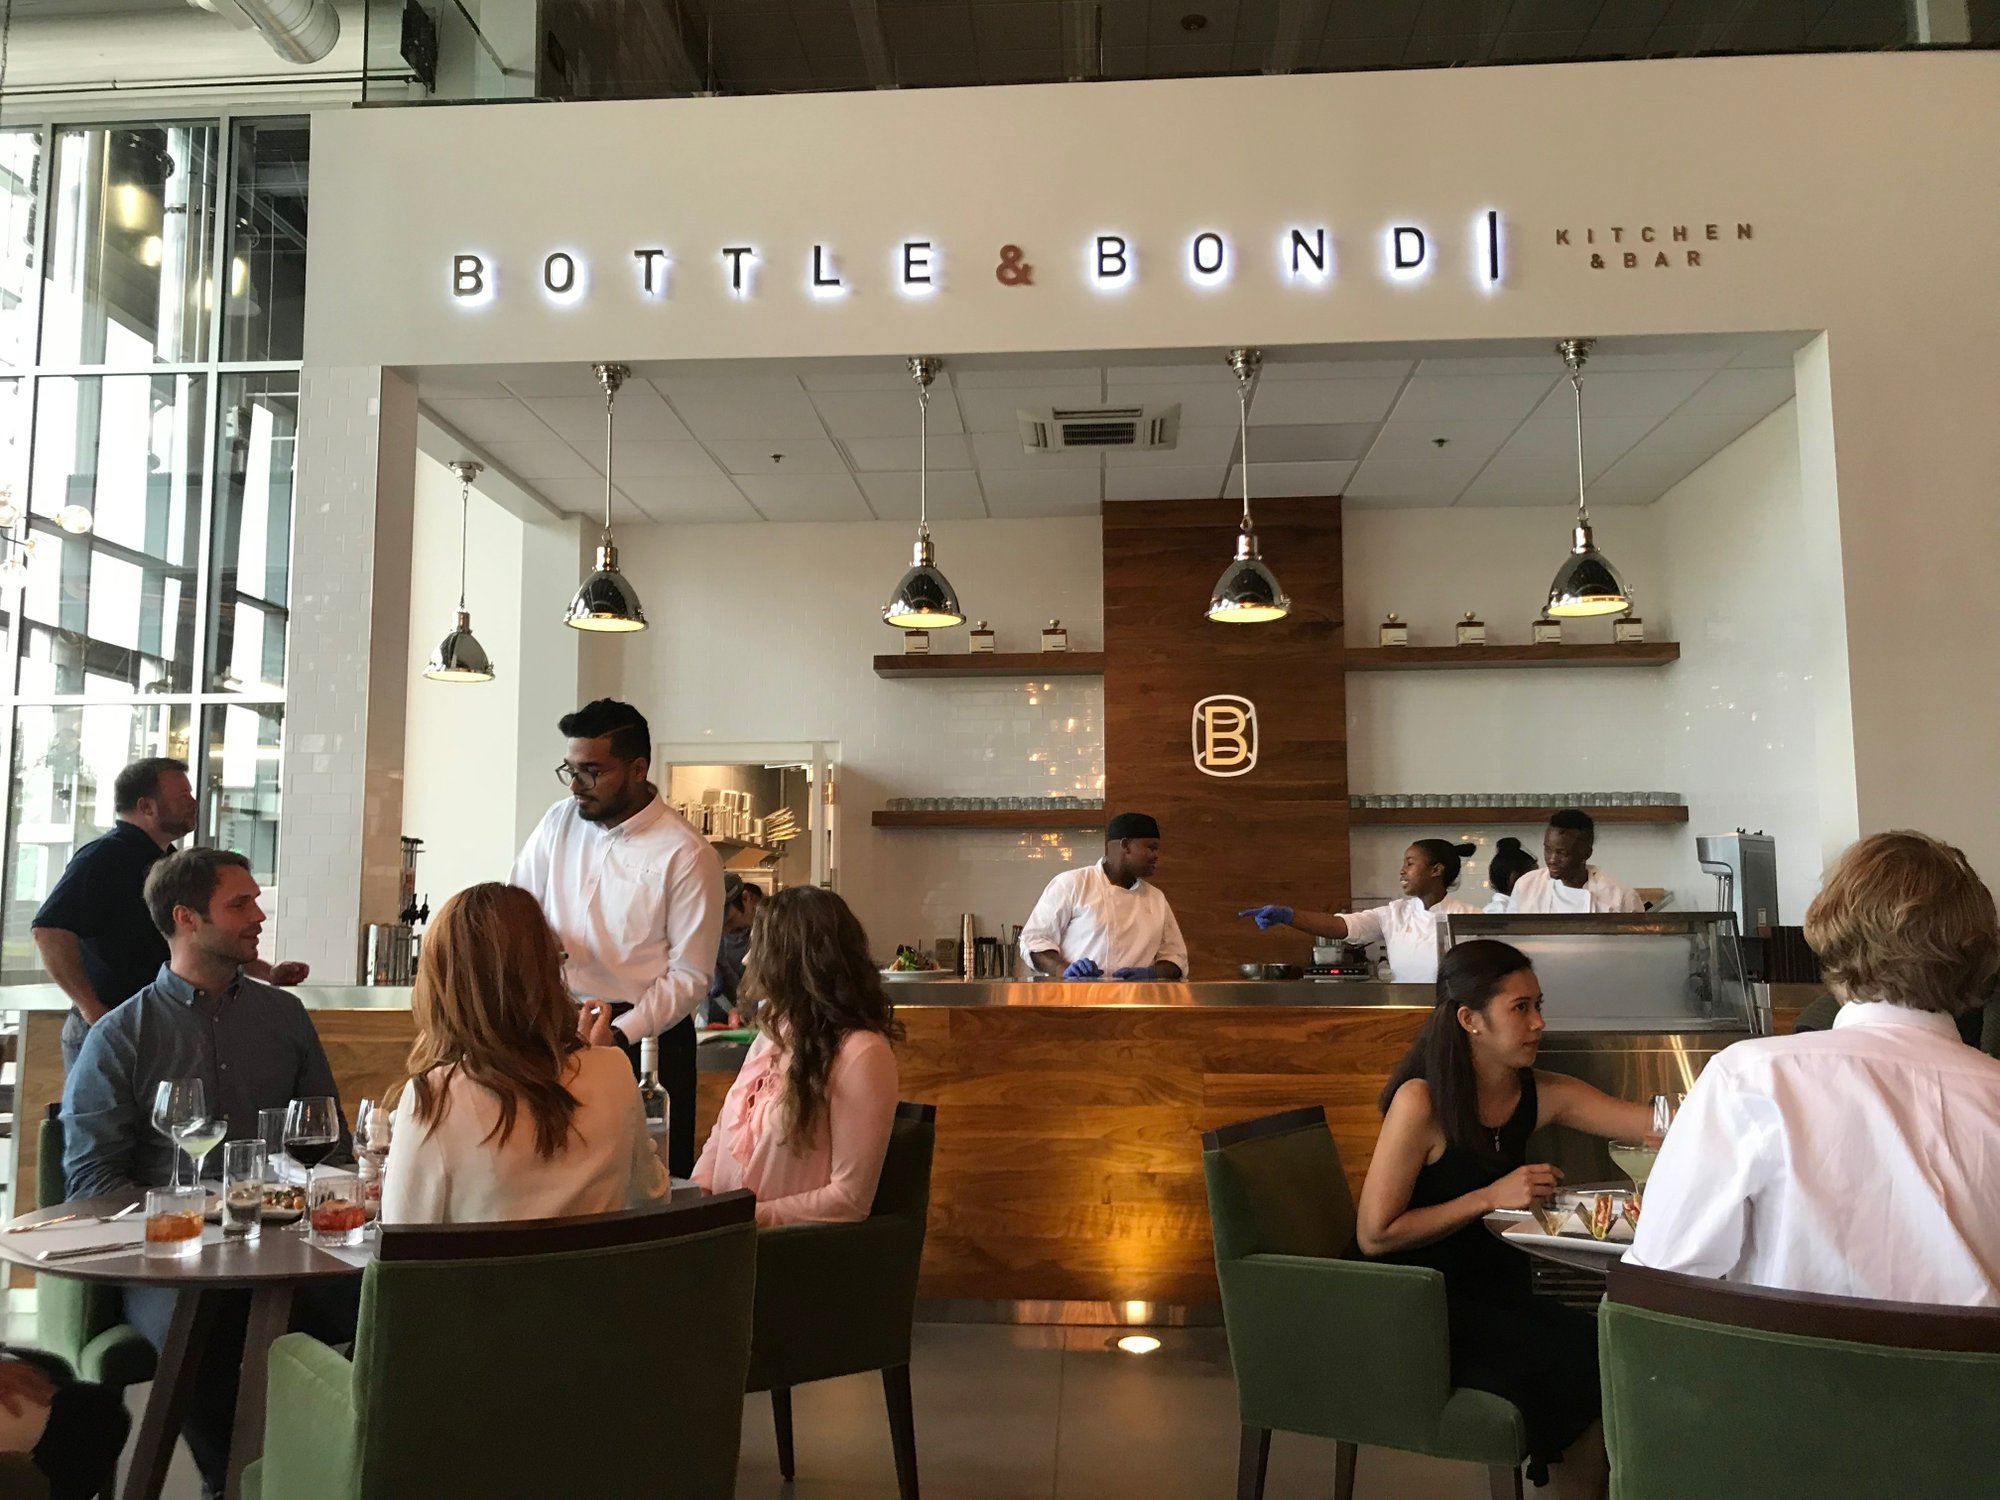 Bottle bond kitchen and bar officially opens at the bardstown bourbon company